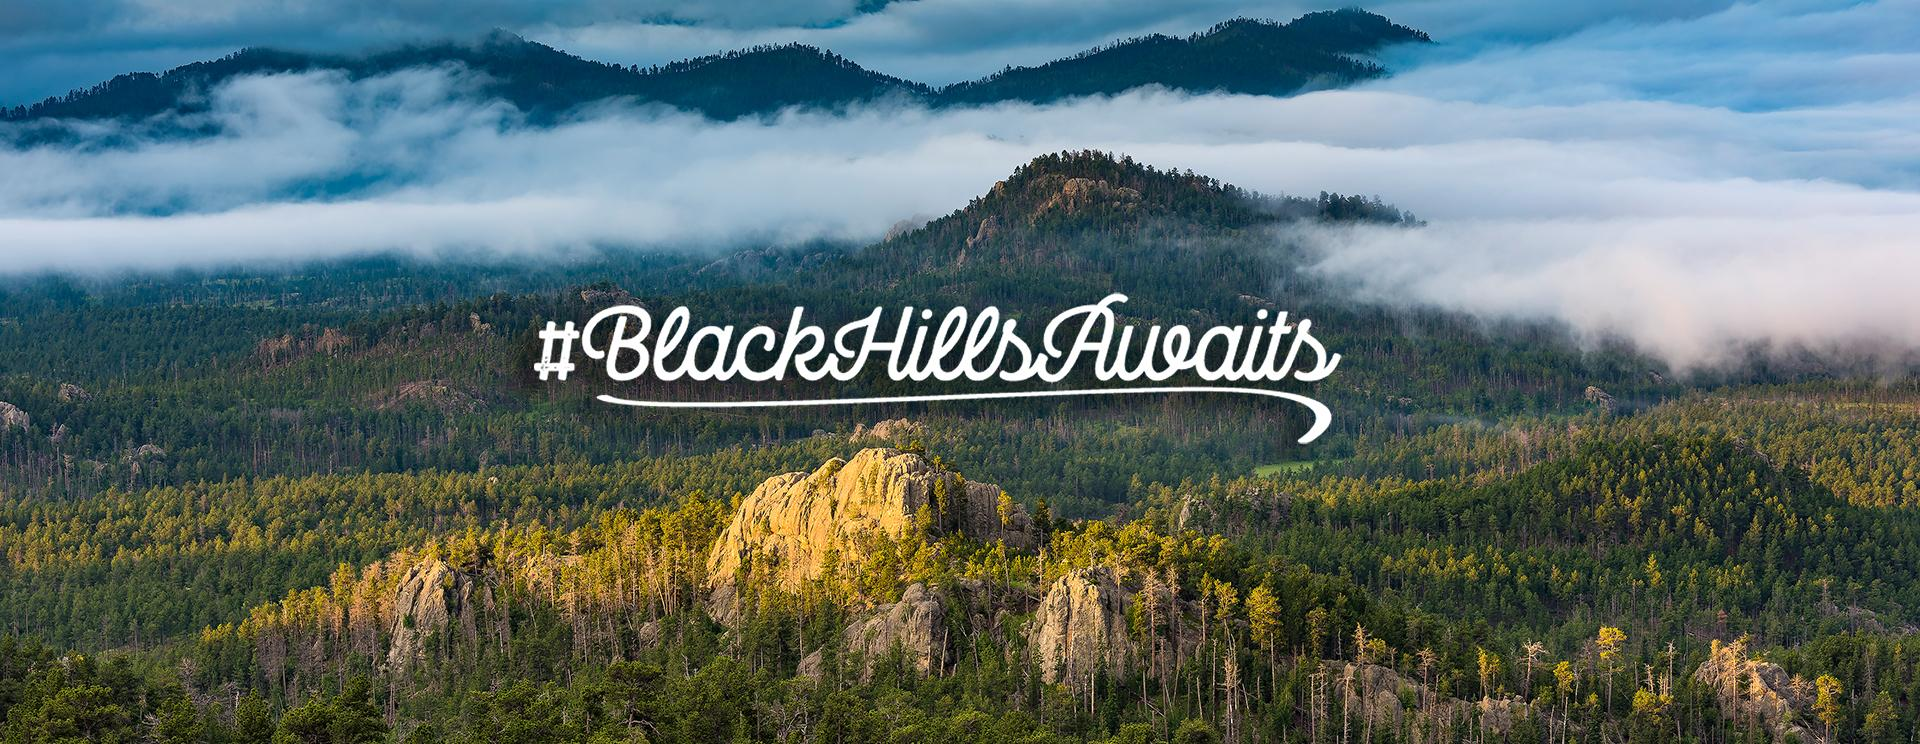 Experience the Black Hills and Badlands With 5 Stunning Photos | #BlackHillsAwaits